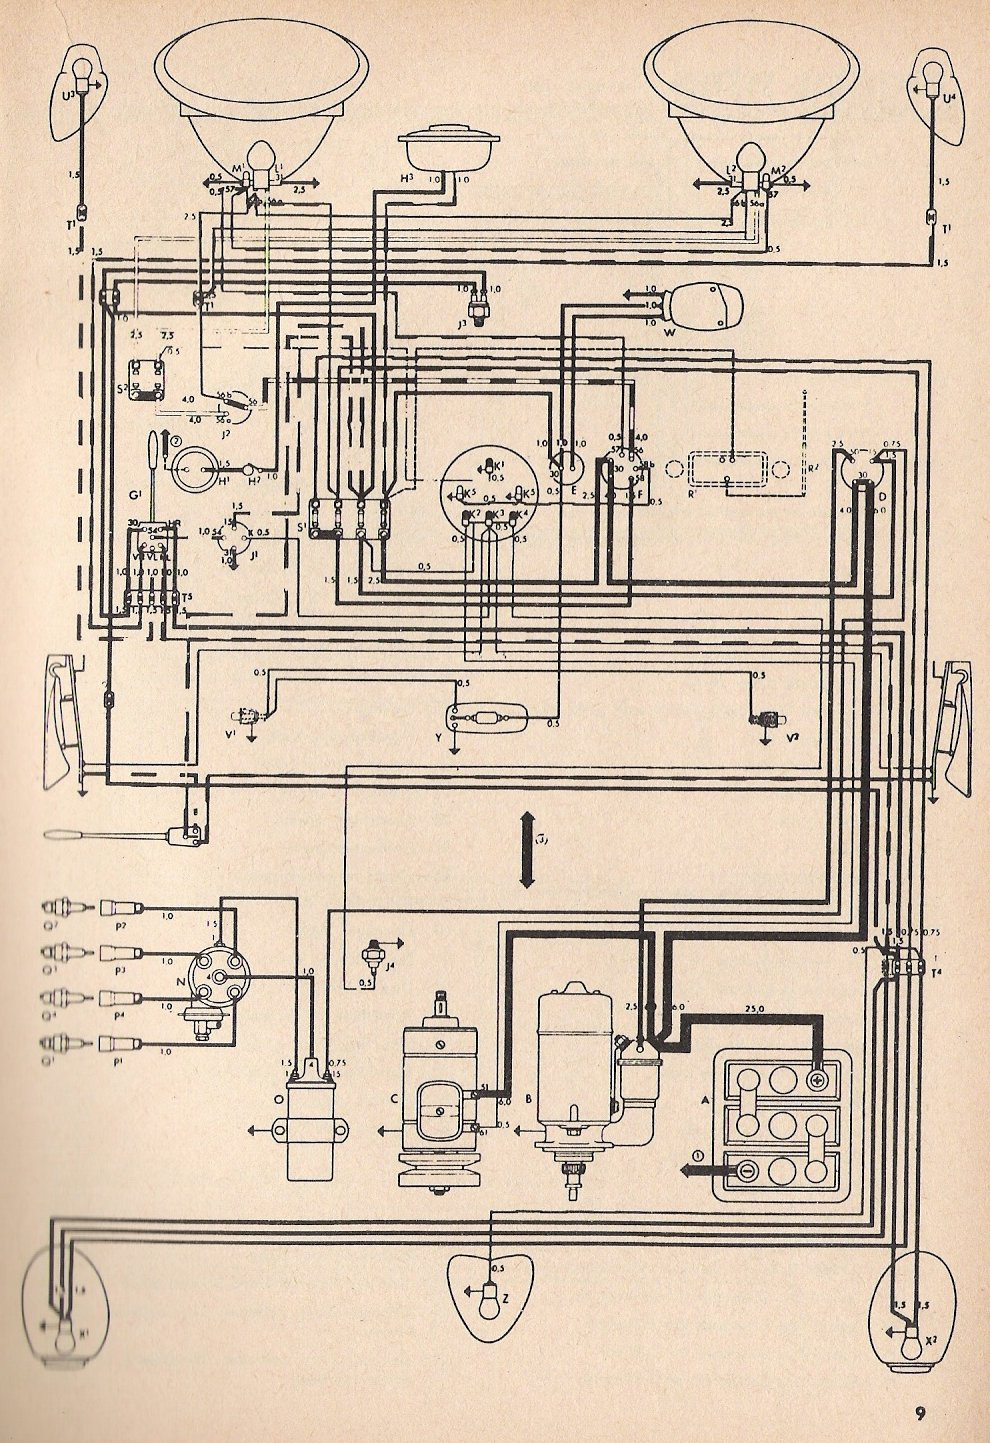 vw beetle wiring diagram wiring diagrams online 1955 vw beetle wiring diagram